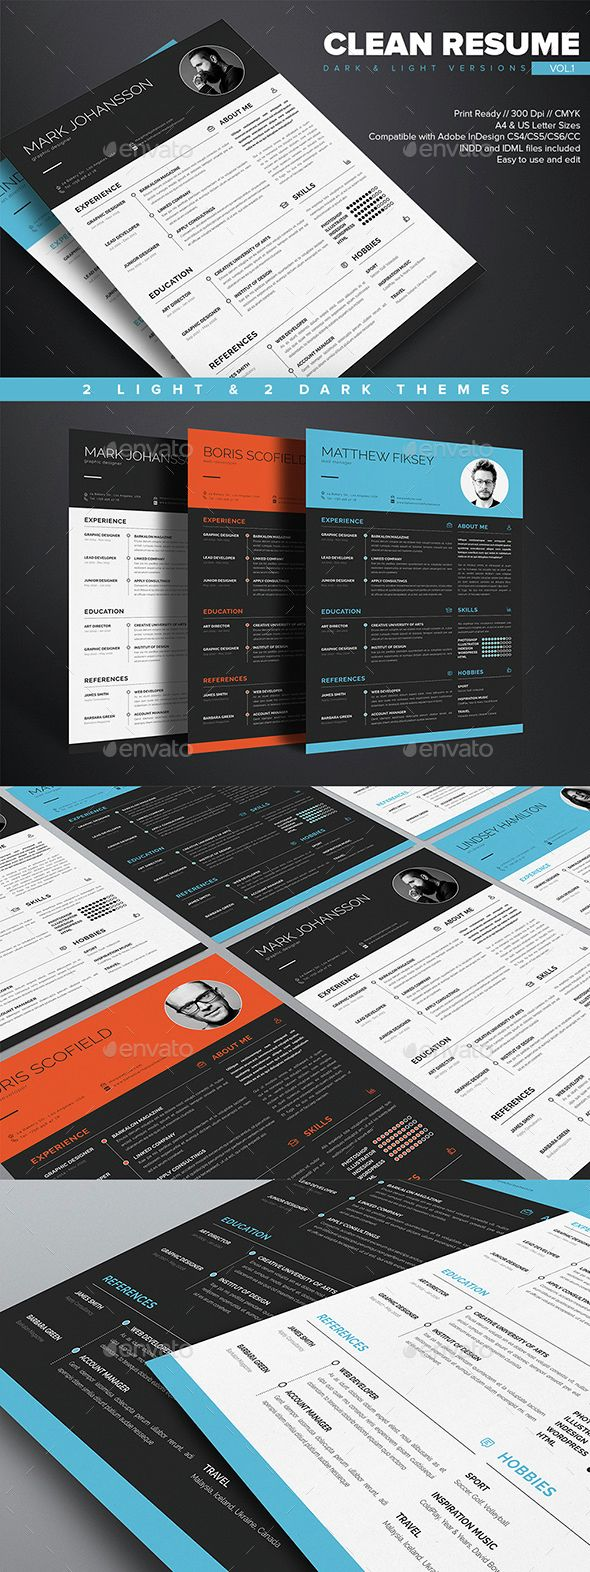 Clean Resume Template Vol.1   Template, Graphics and Cv resume template